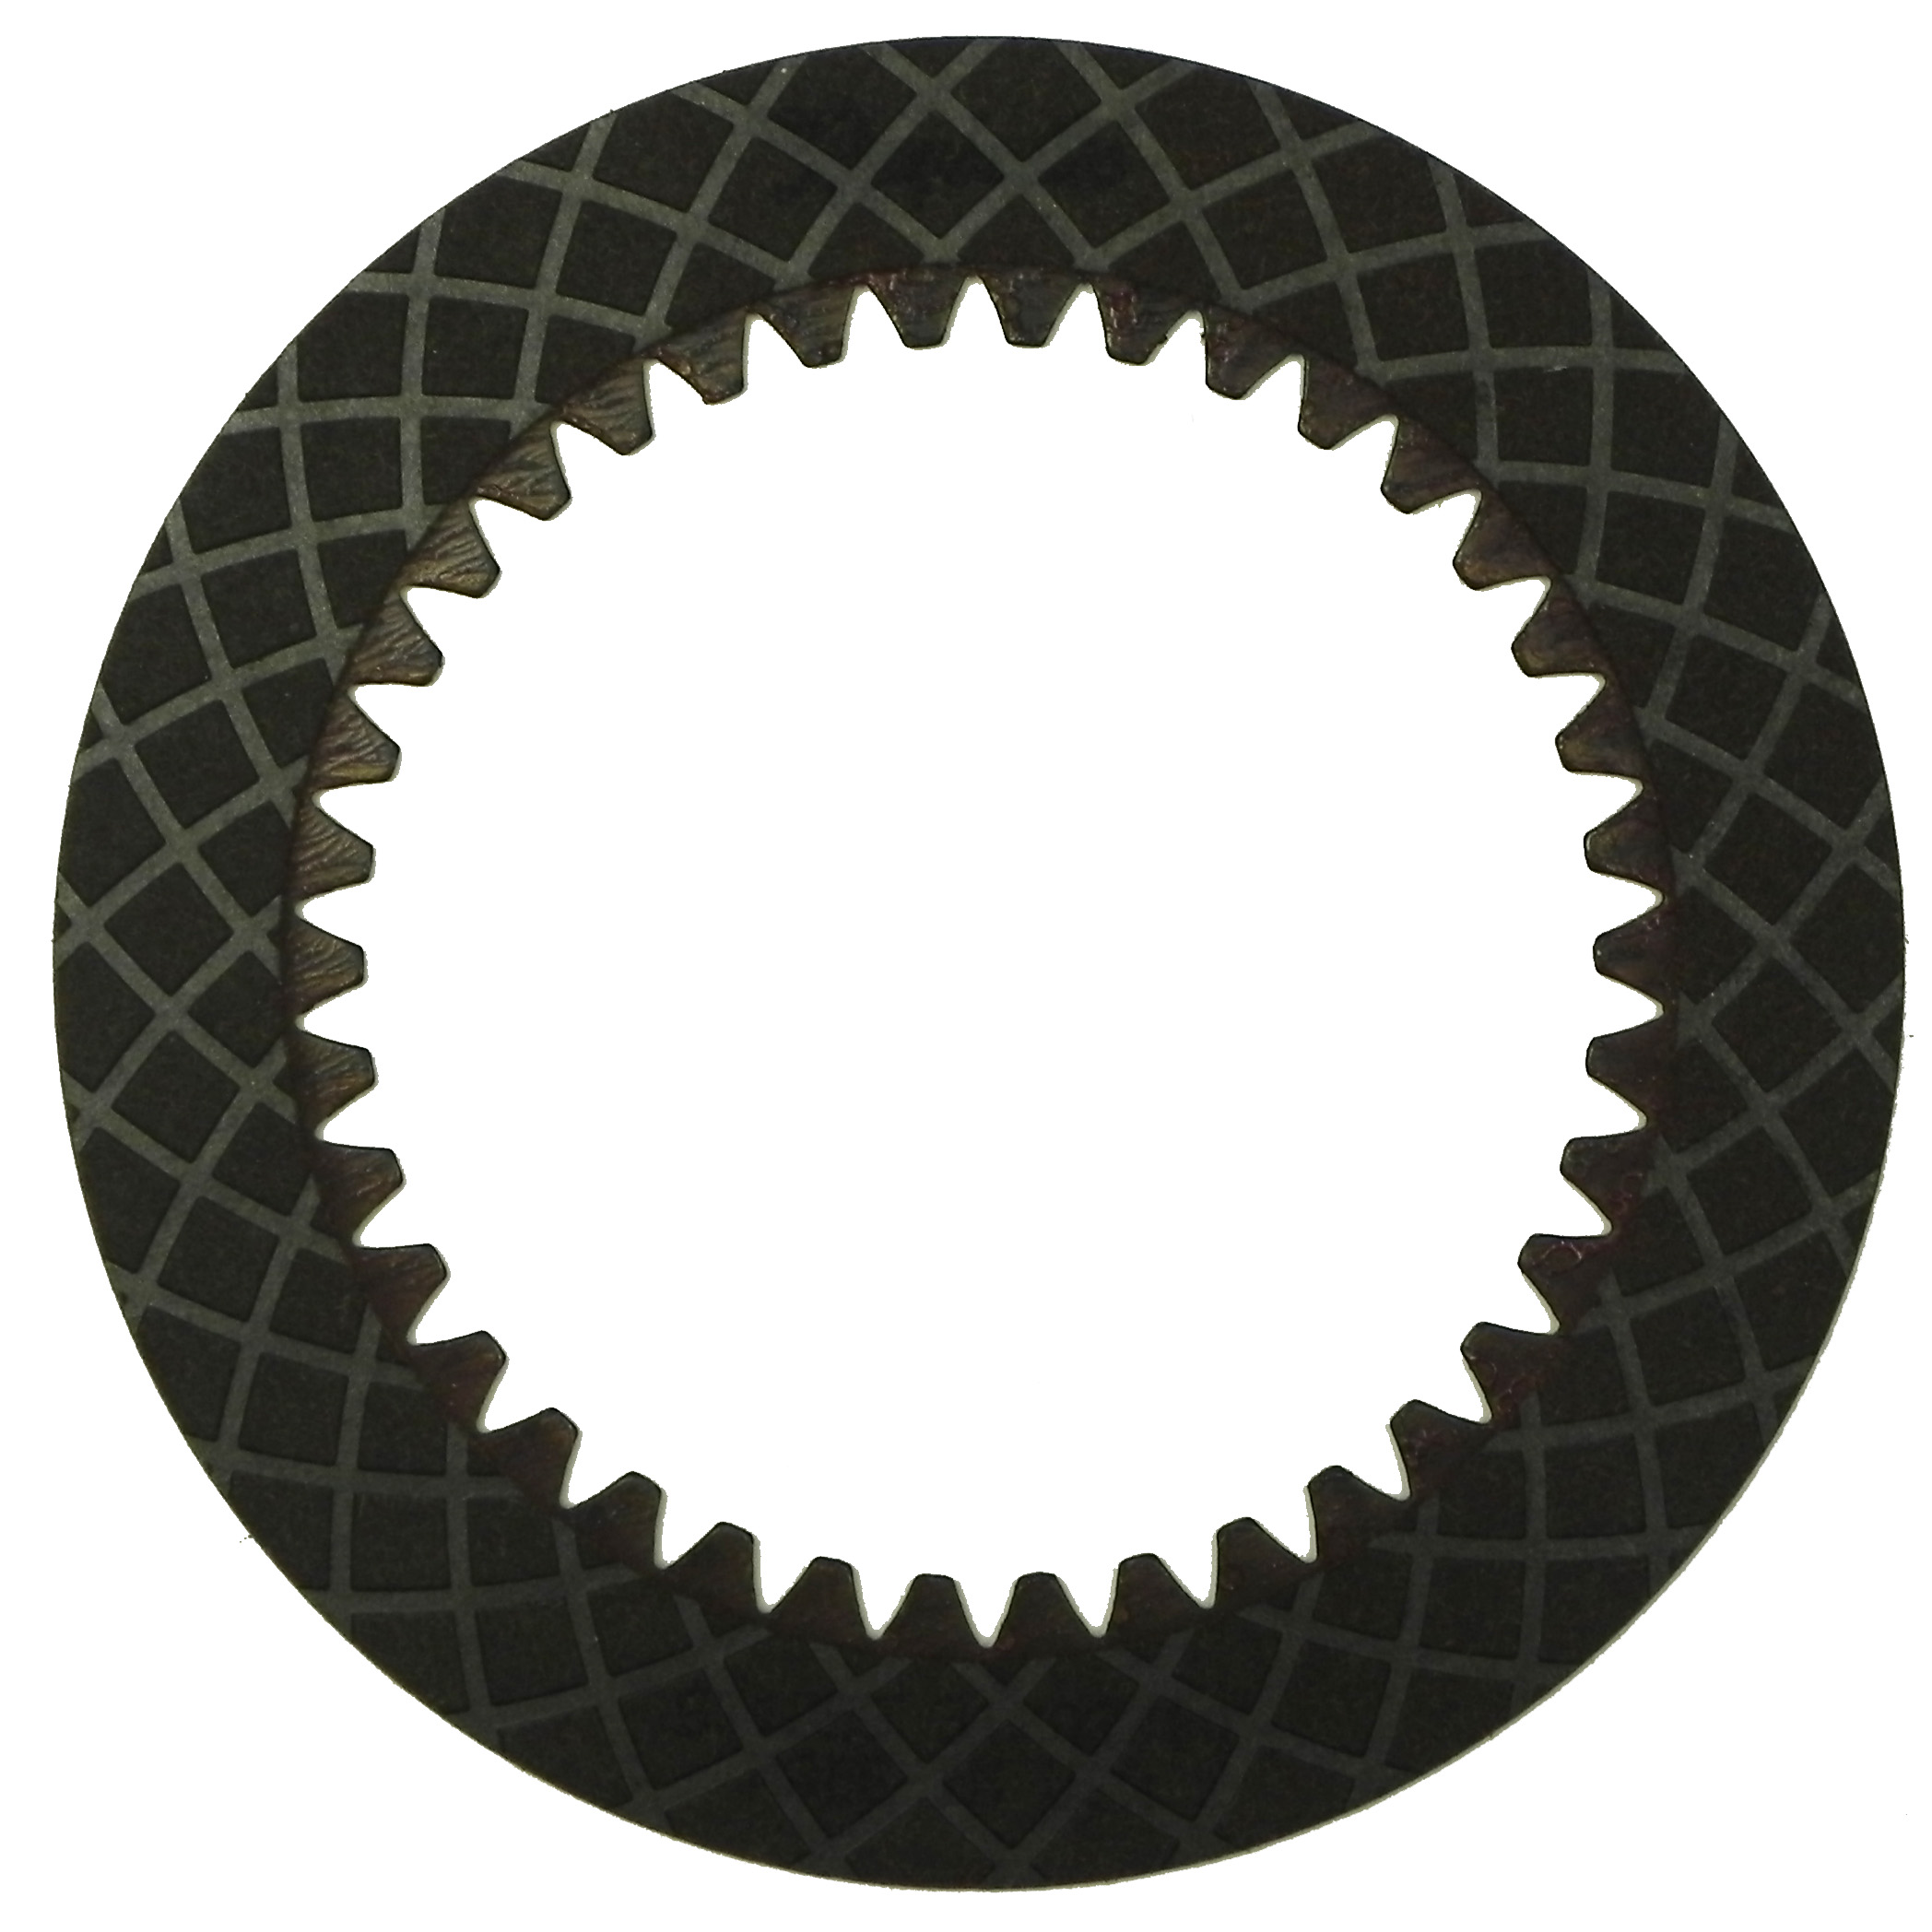 R571855 | 2002-2005 Friction Clutch Plate GPX Forward GPX